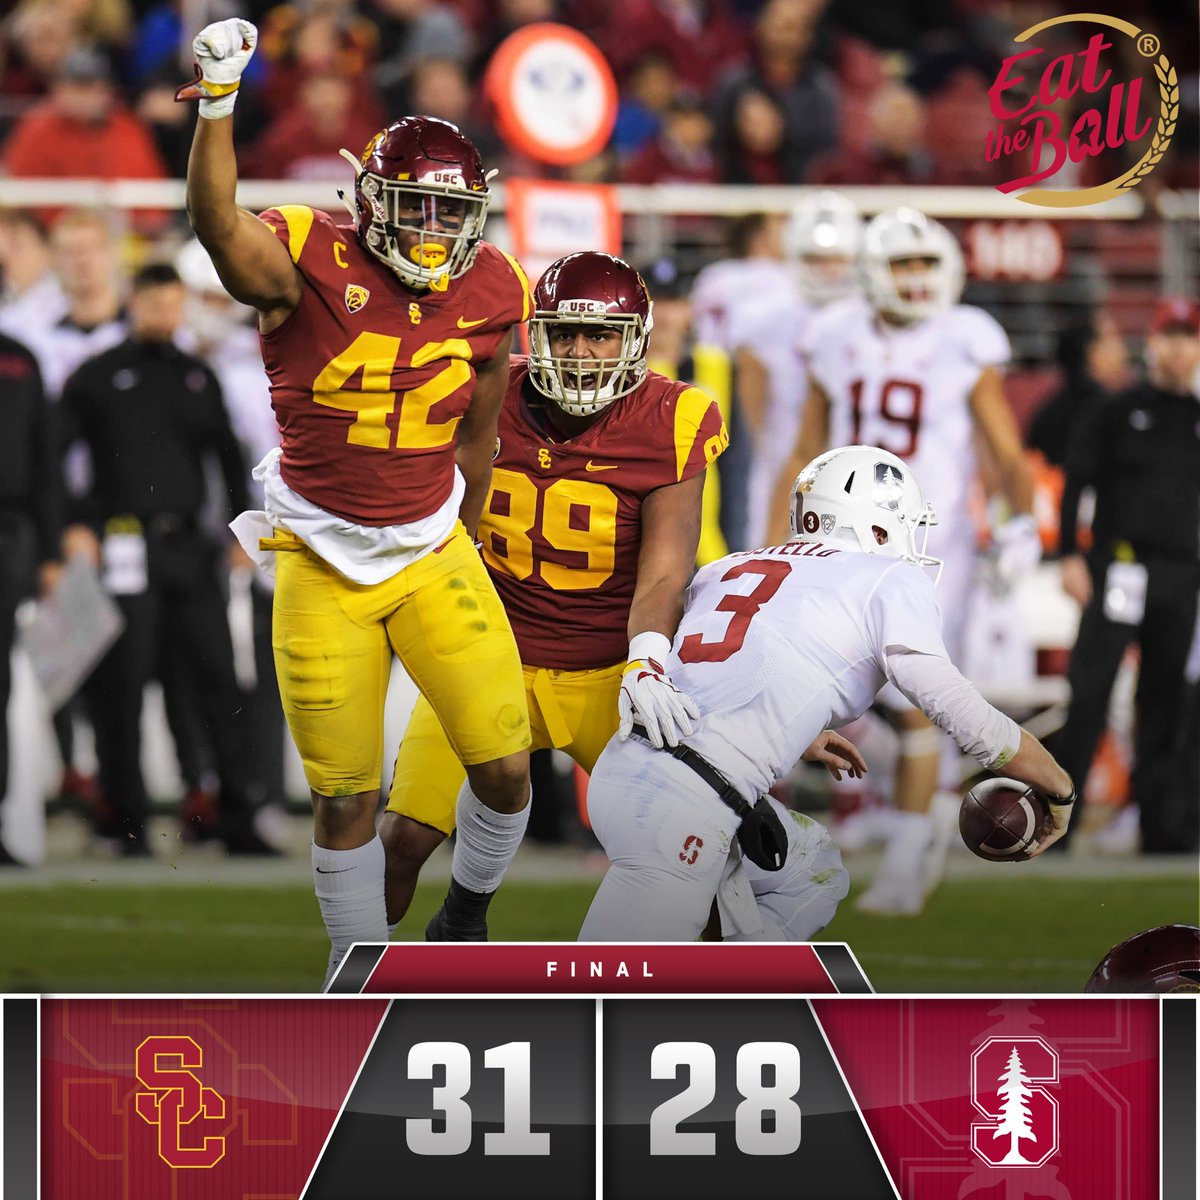 FINAL: USC 31, Stanford 28  The Trojans beat the Cardinal to win the 2017 Pac-12 Championship!  #FightOn